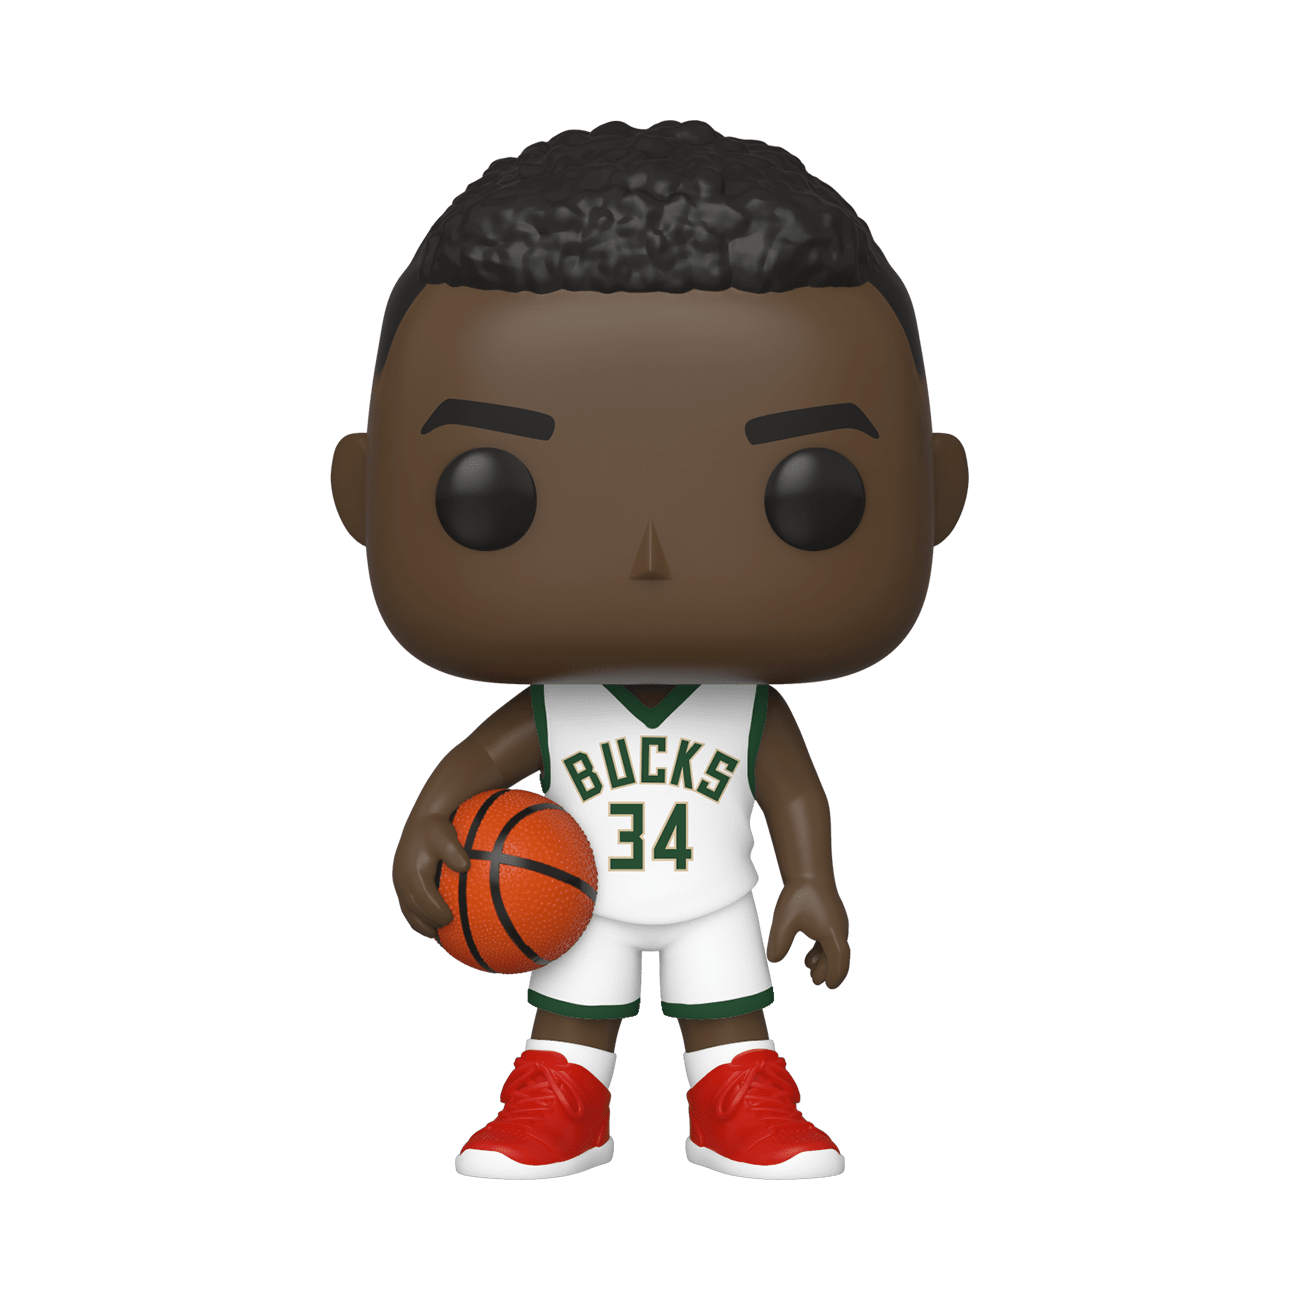 1436_3266_8d750cc8929ff83_46632_NBA_GiannisAntetokounmpo_POP_GLAM-WEB-7a3cd661dad02e8287b4e2947ff8a863.png